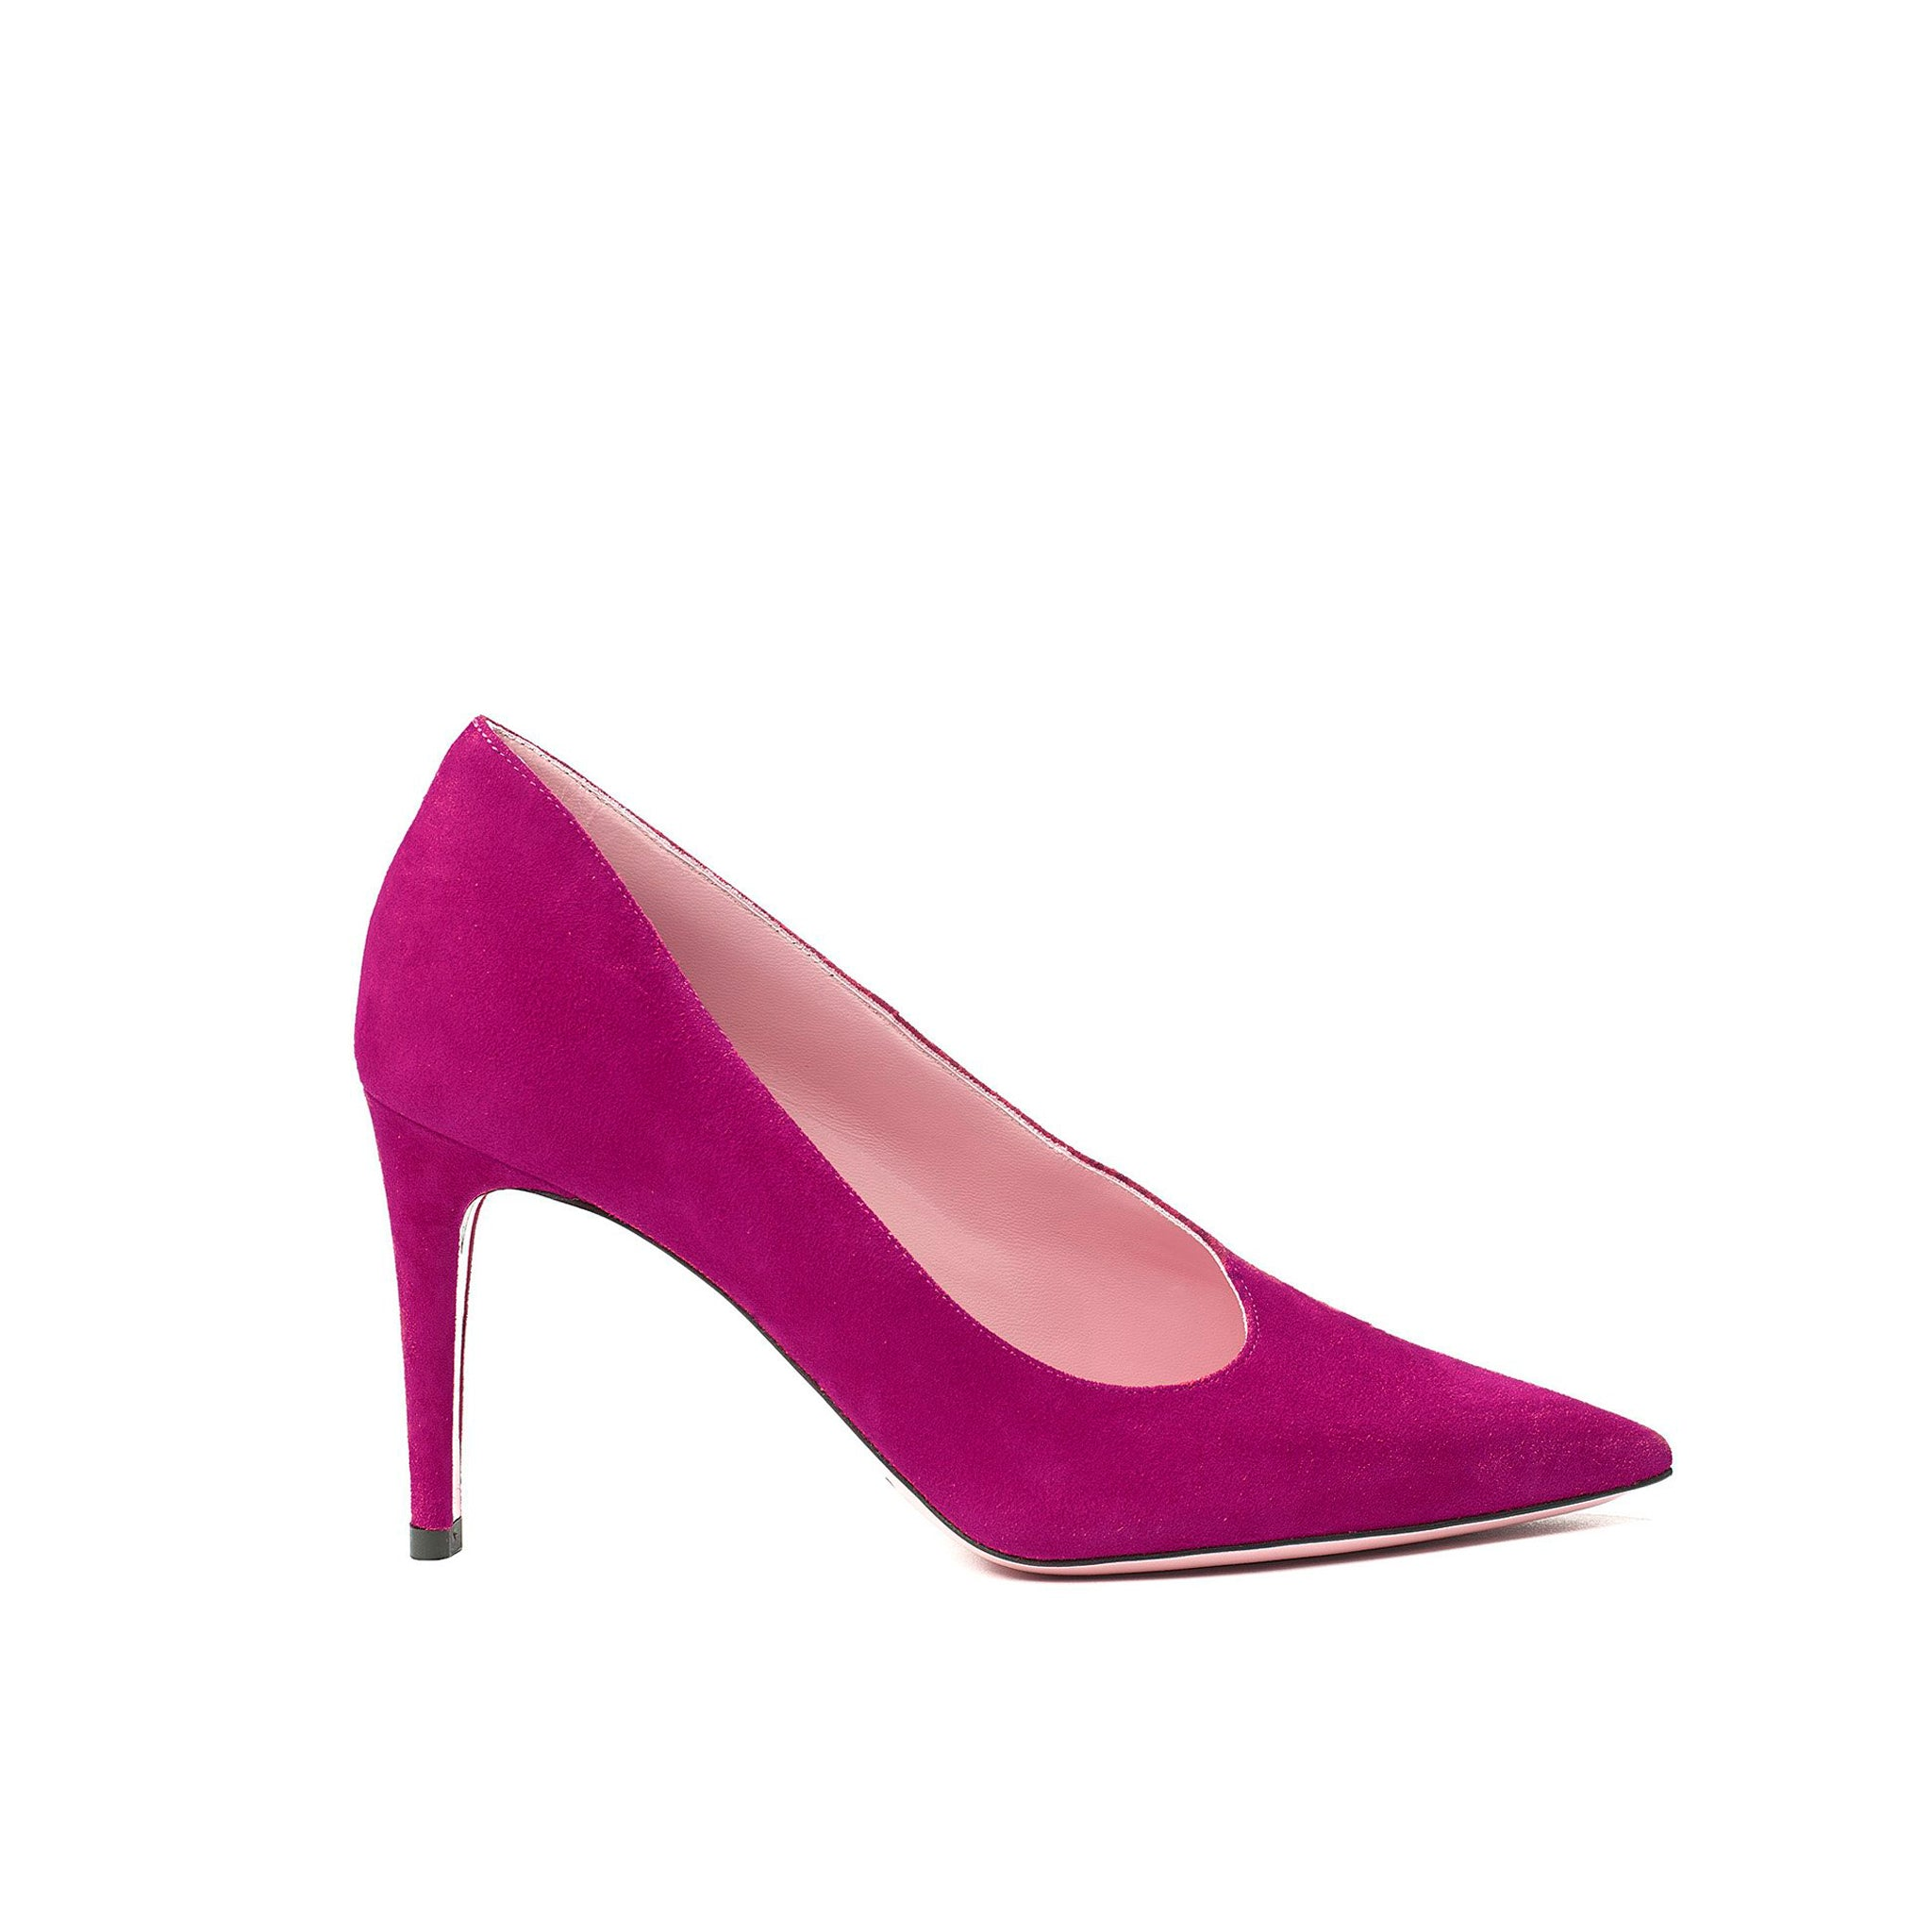 Phare Asymmetrical pump in azalea suede